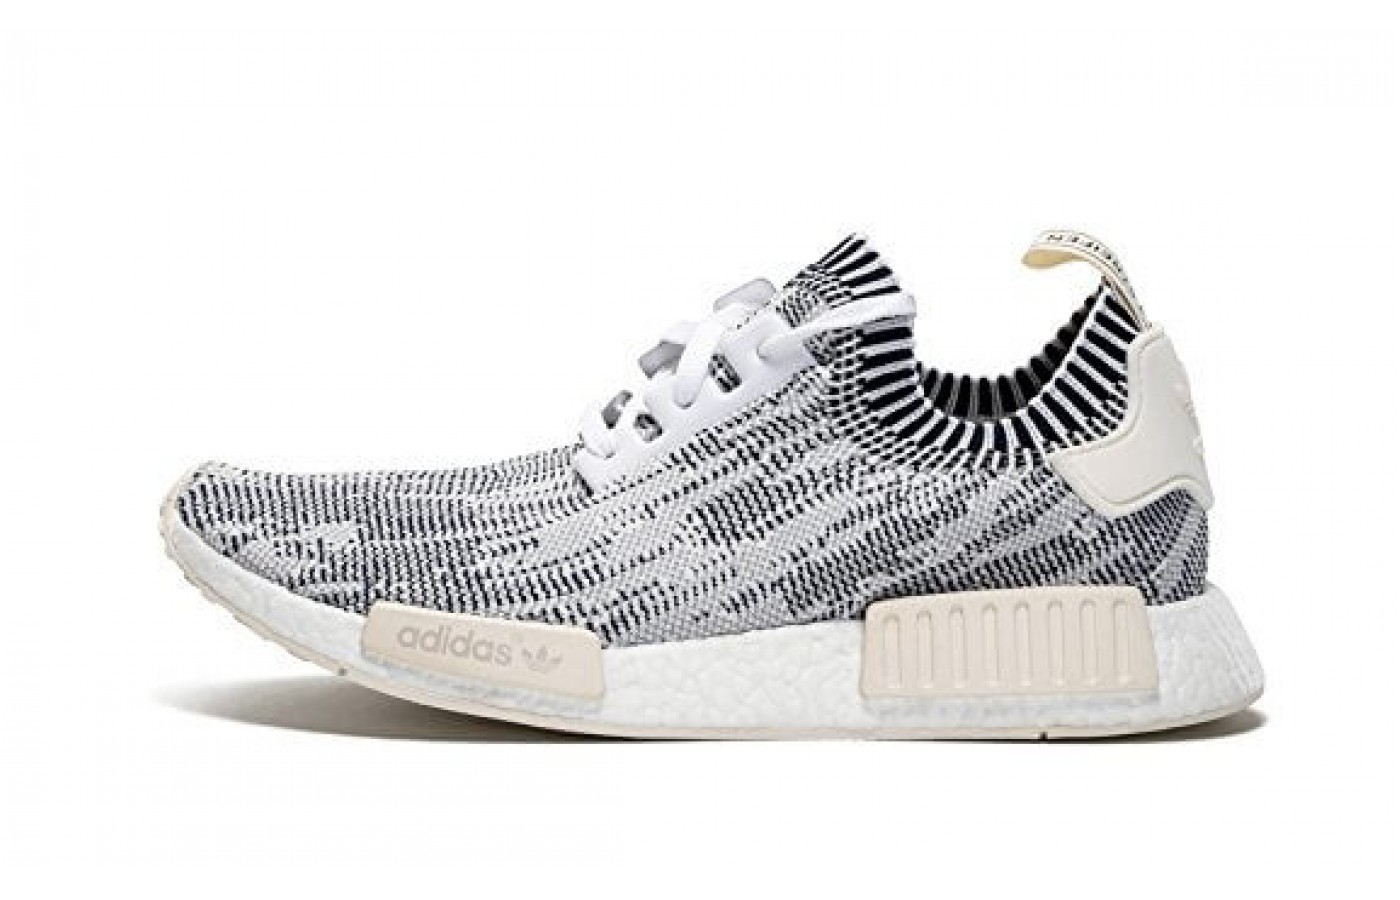 Adidas NMD R1 Primeknit side view